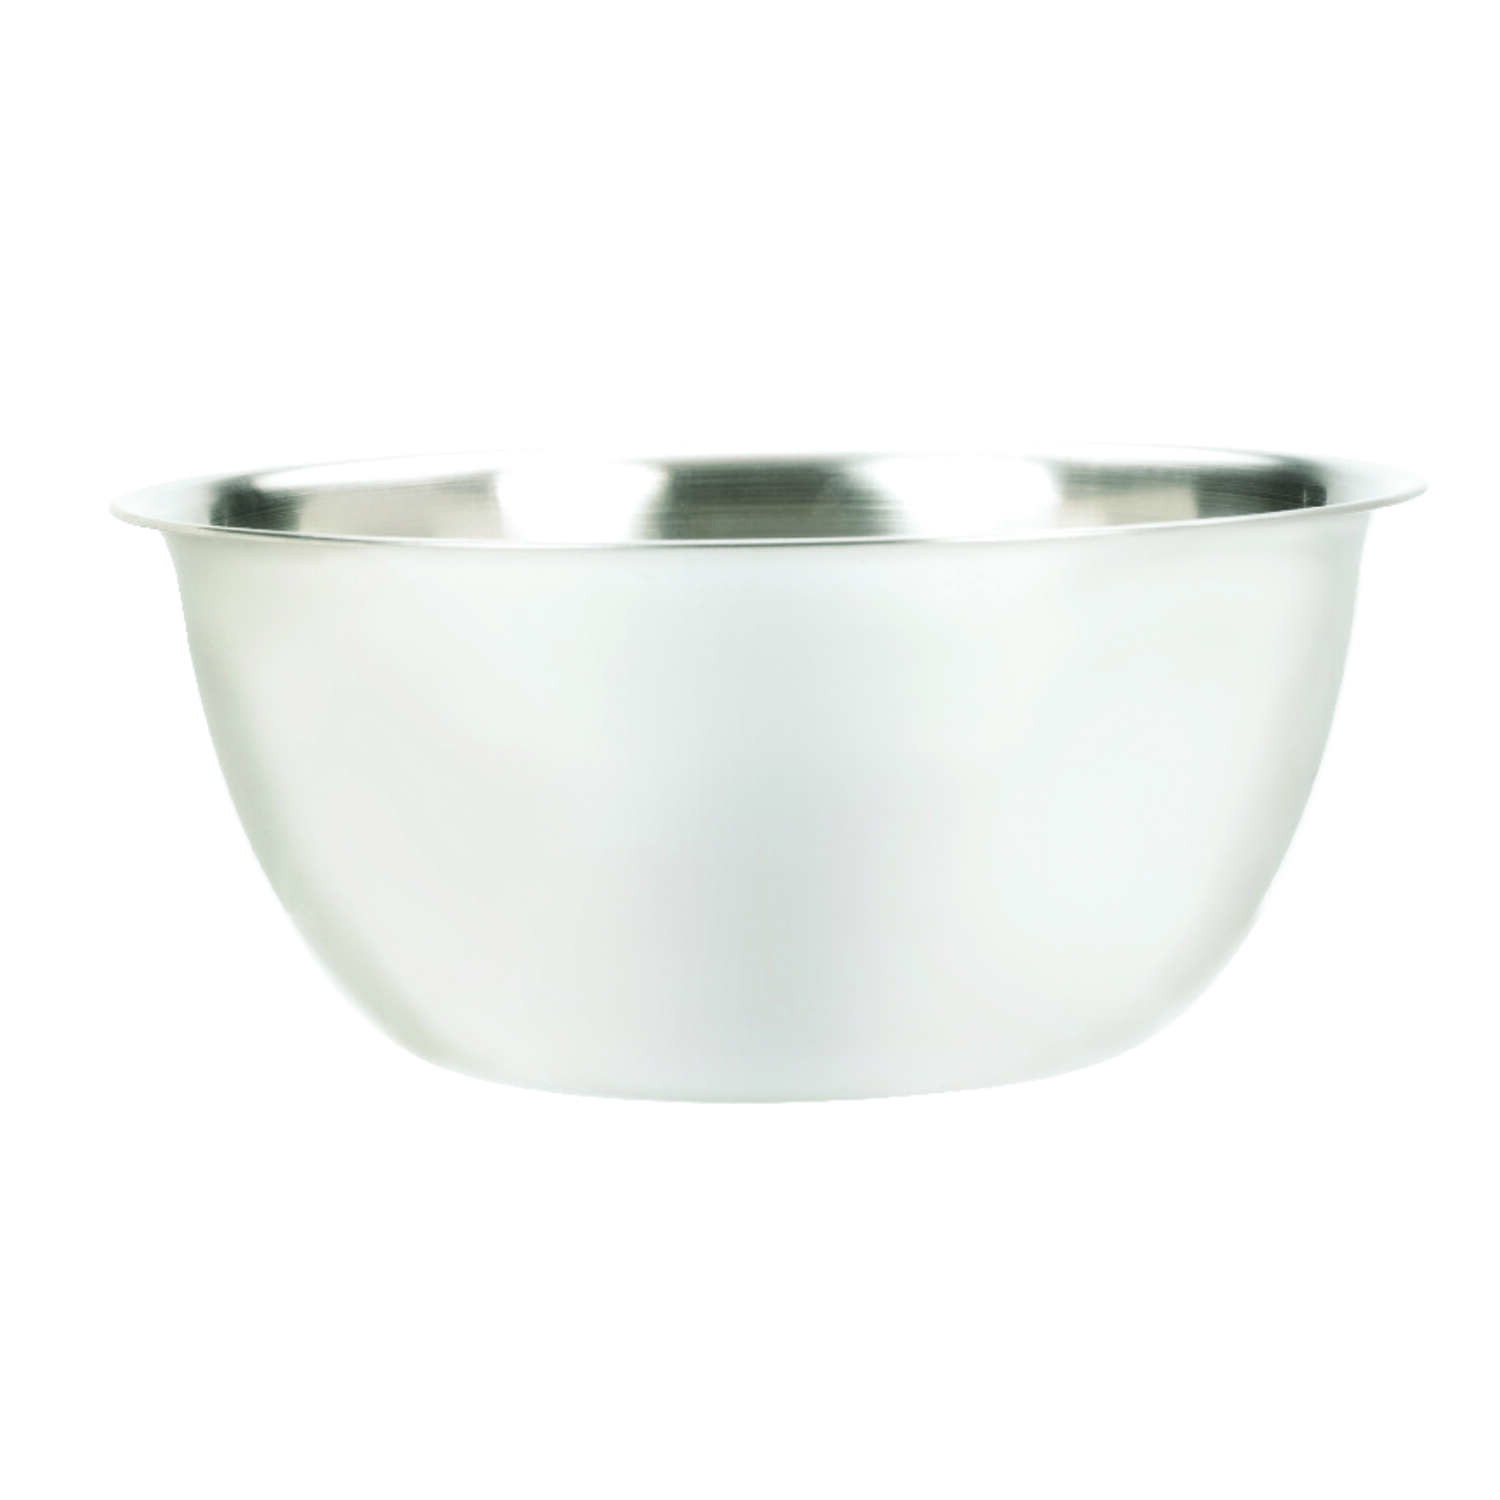 Fox Run  6.25 qt. Stainless Steel  Silver  Mixing Bowl  1 pc.